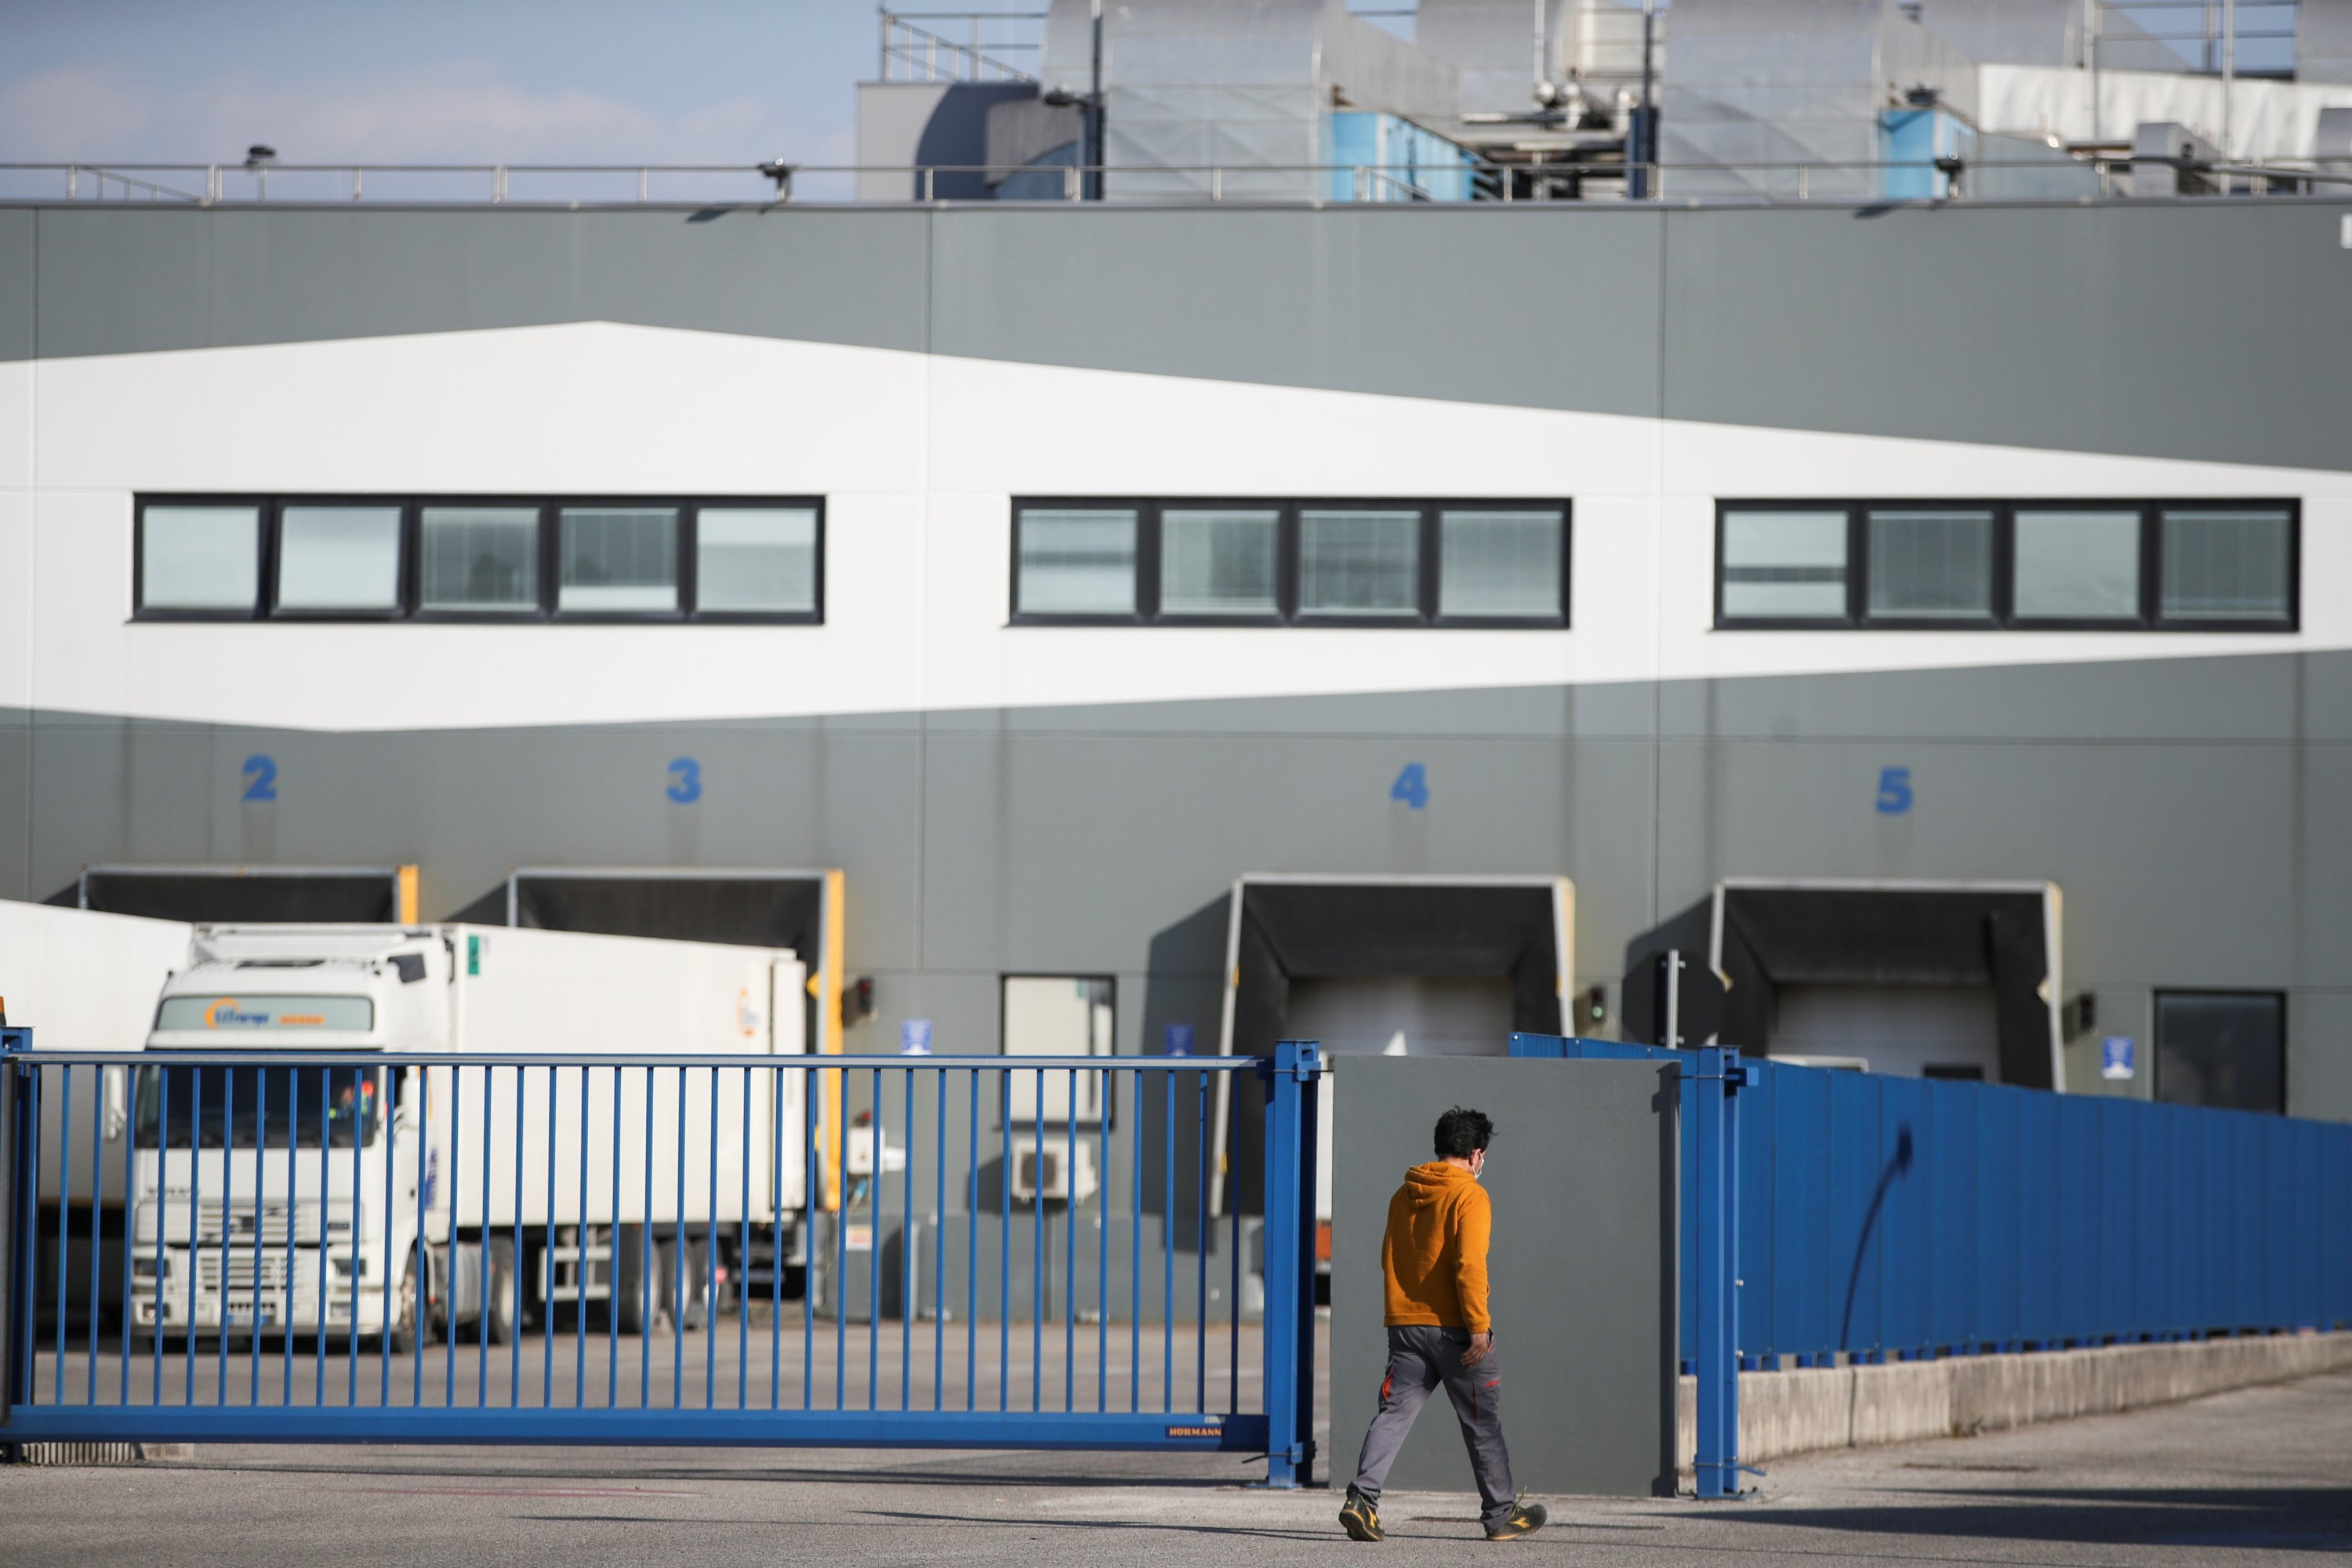 A man walks outside the Catalent plant where millions of doses of the AstraZeneca's COVID-19 vaccine were reportedly found, in Anagni, Italy, March 24, 2021. (Reuters Photo)